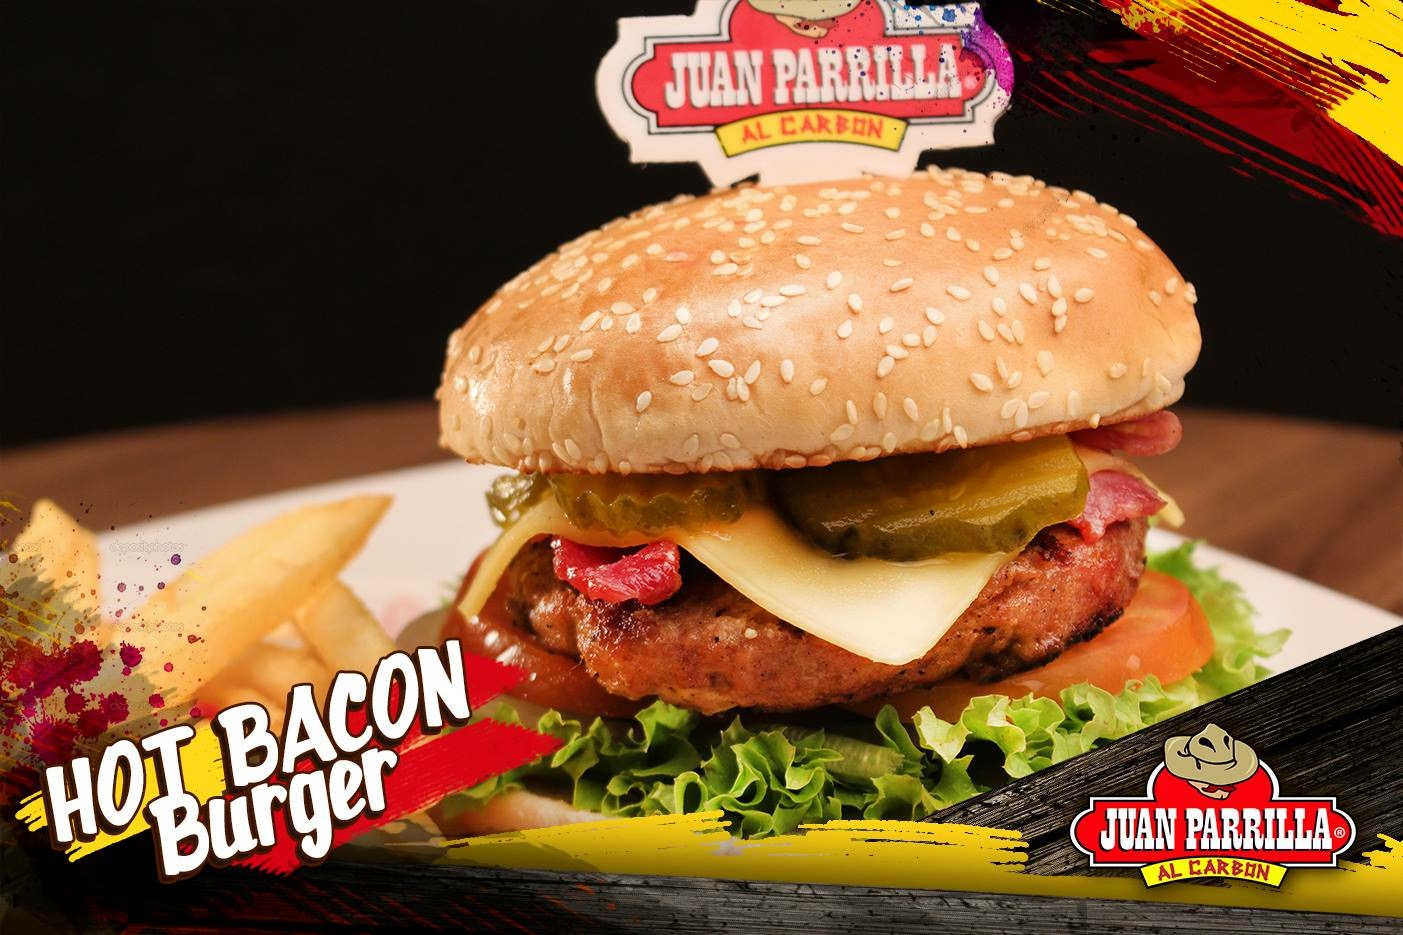 Hot Bacon Burger